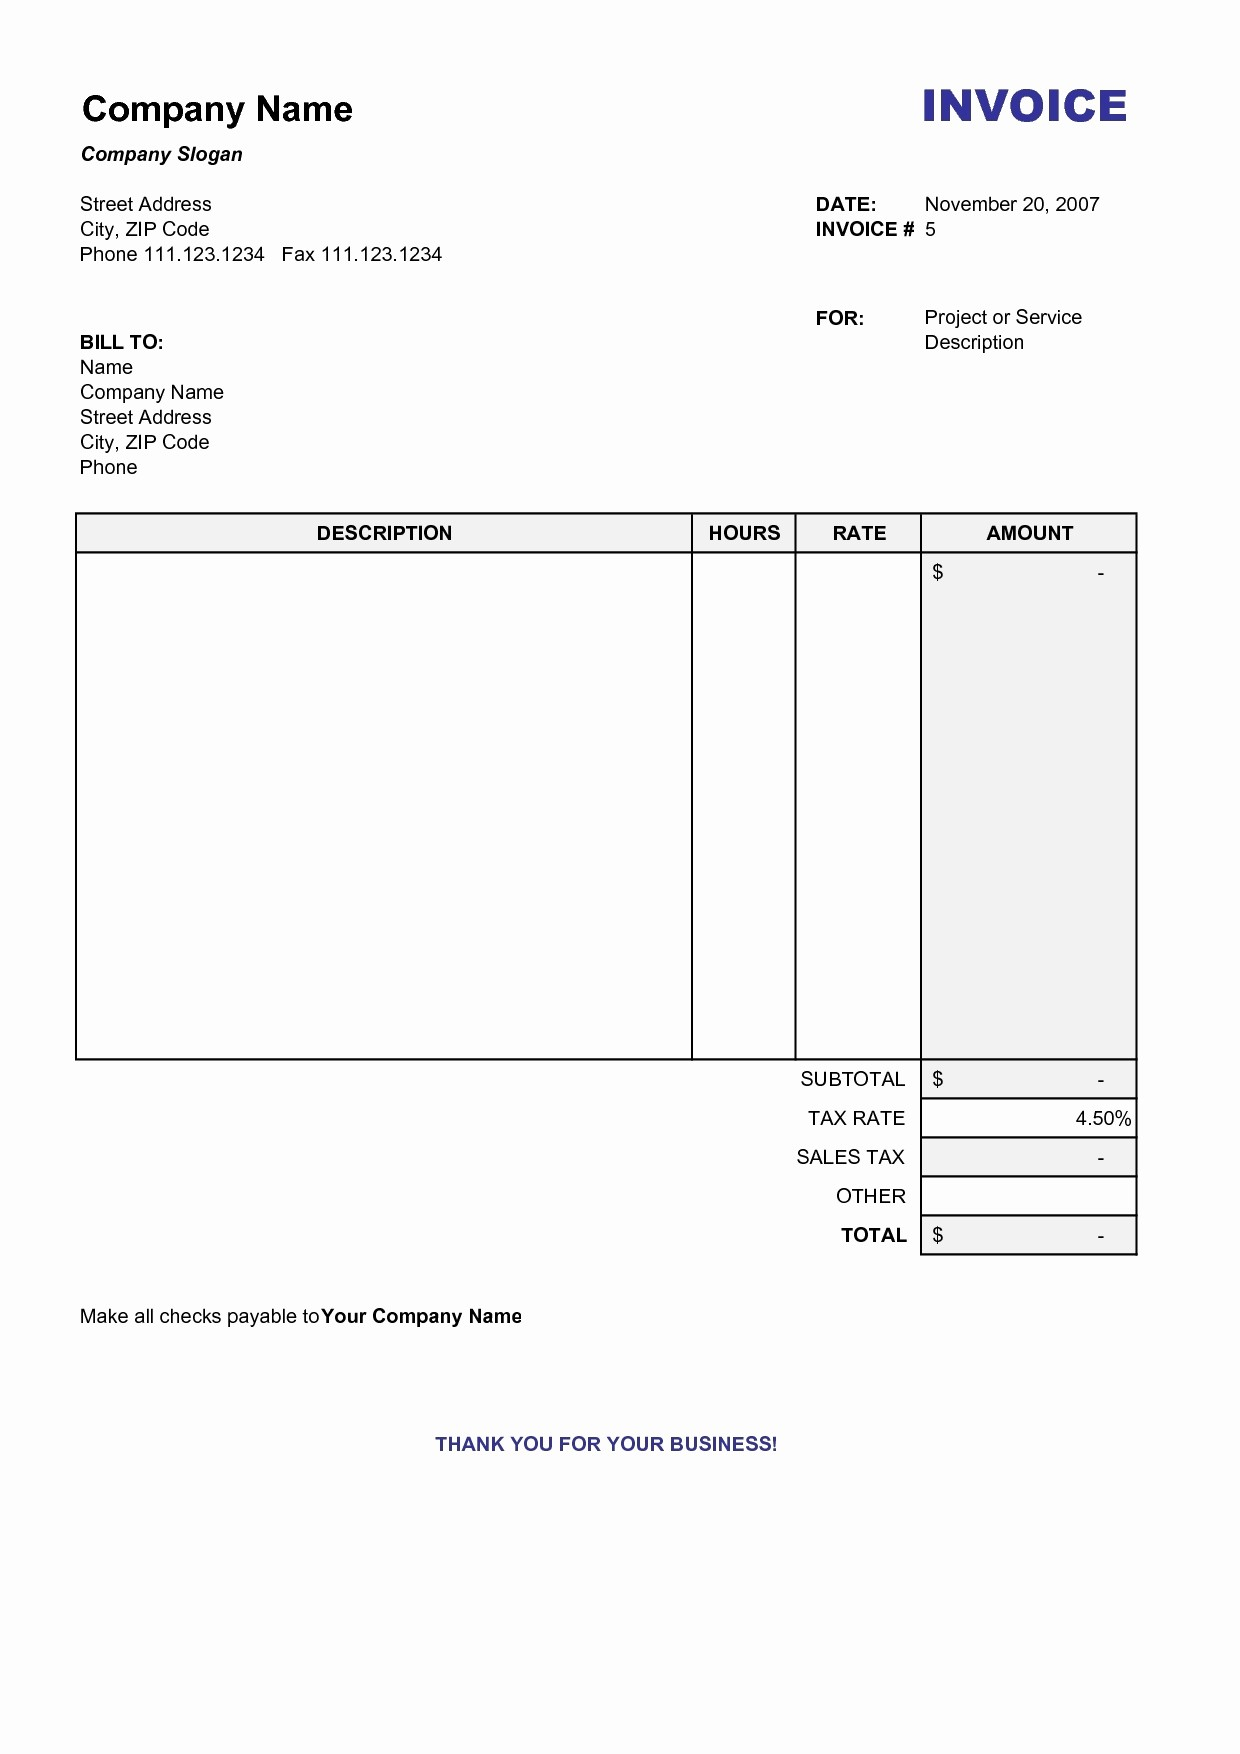 Create An Invoice Free Template Luxury How to Make An Invoice Word Bamboodownunder